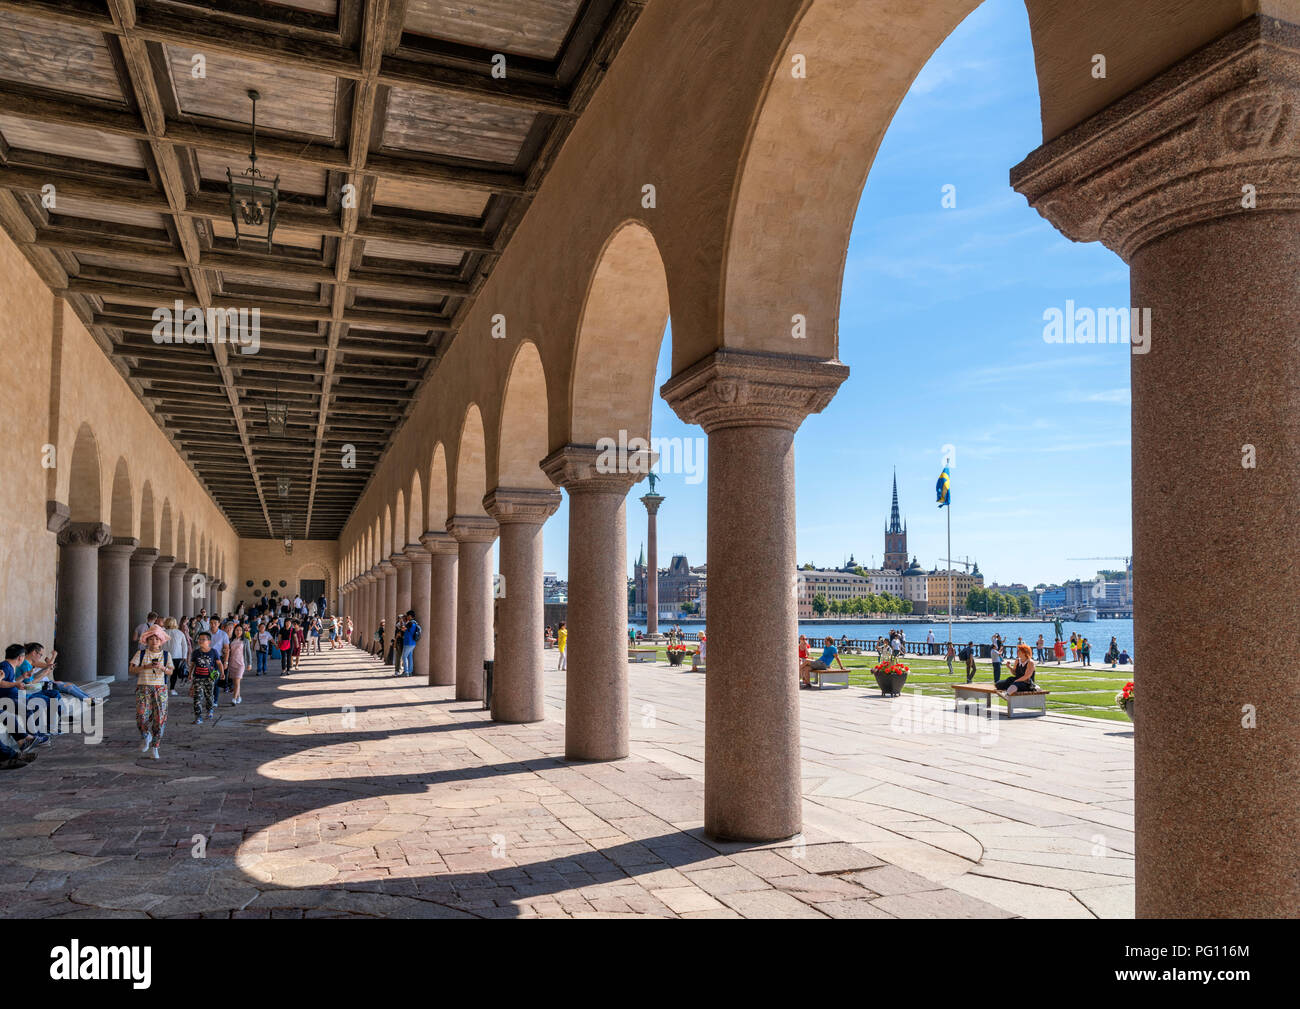 View of Riddarholmen in Gamla Stan (Old Town) from arcade under Stockholm City Hall (Stadshuset), Kungsholmen, Stockholm, Sweden - Stock Image